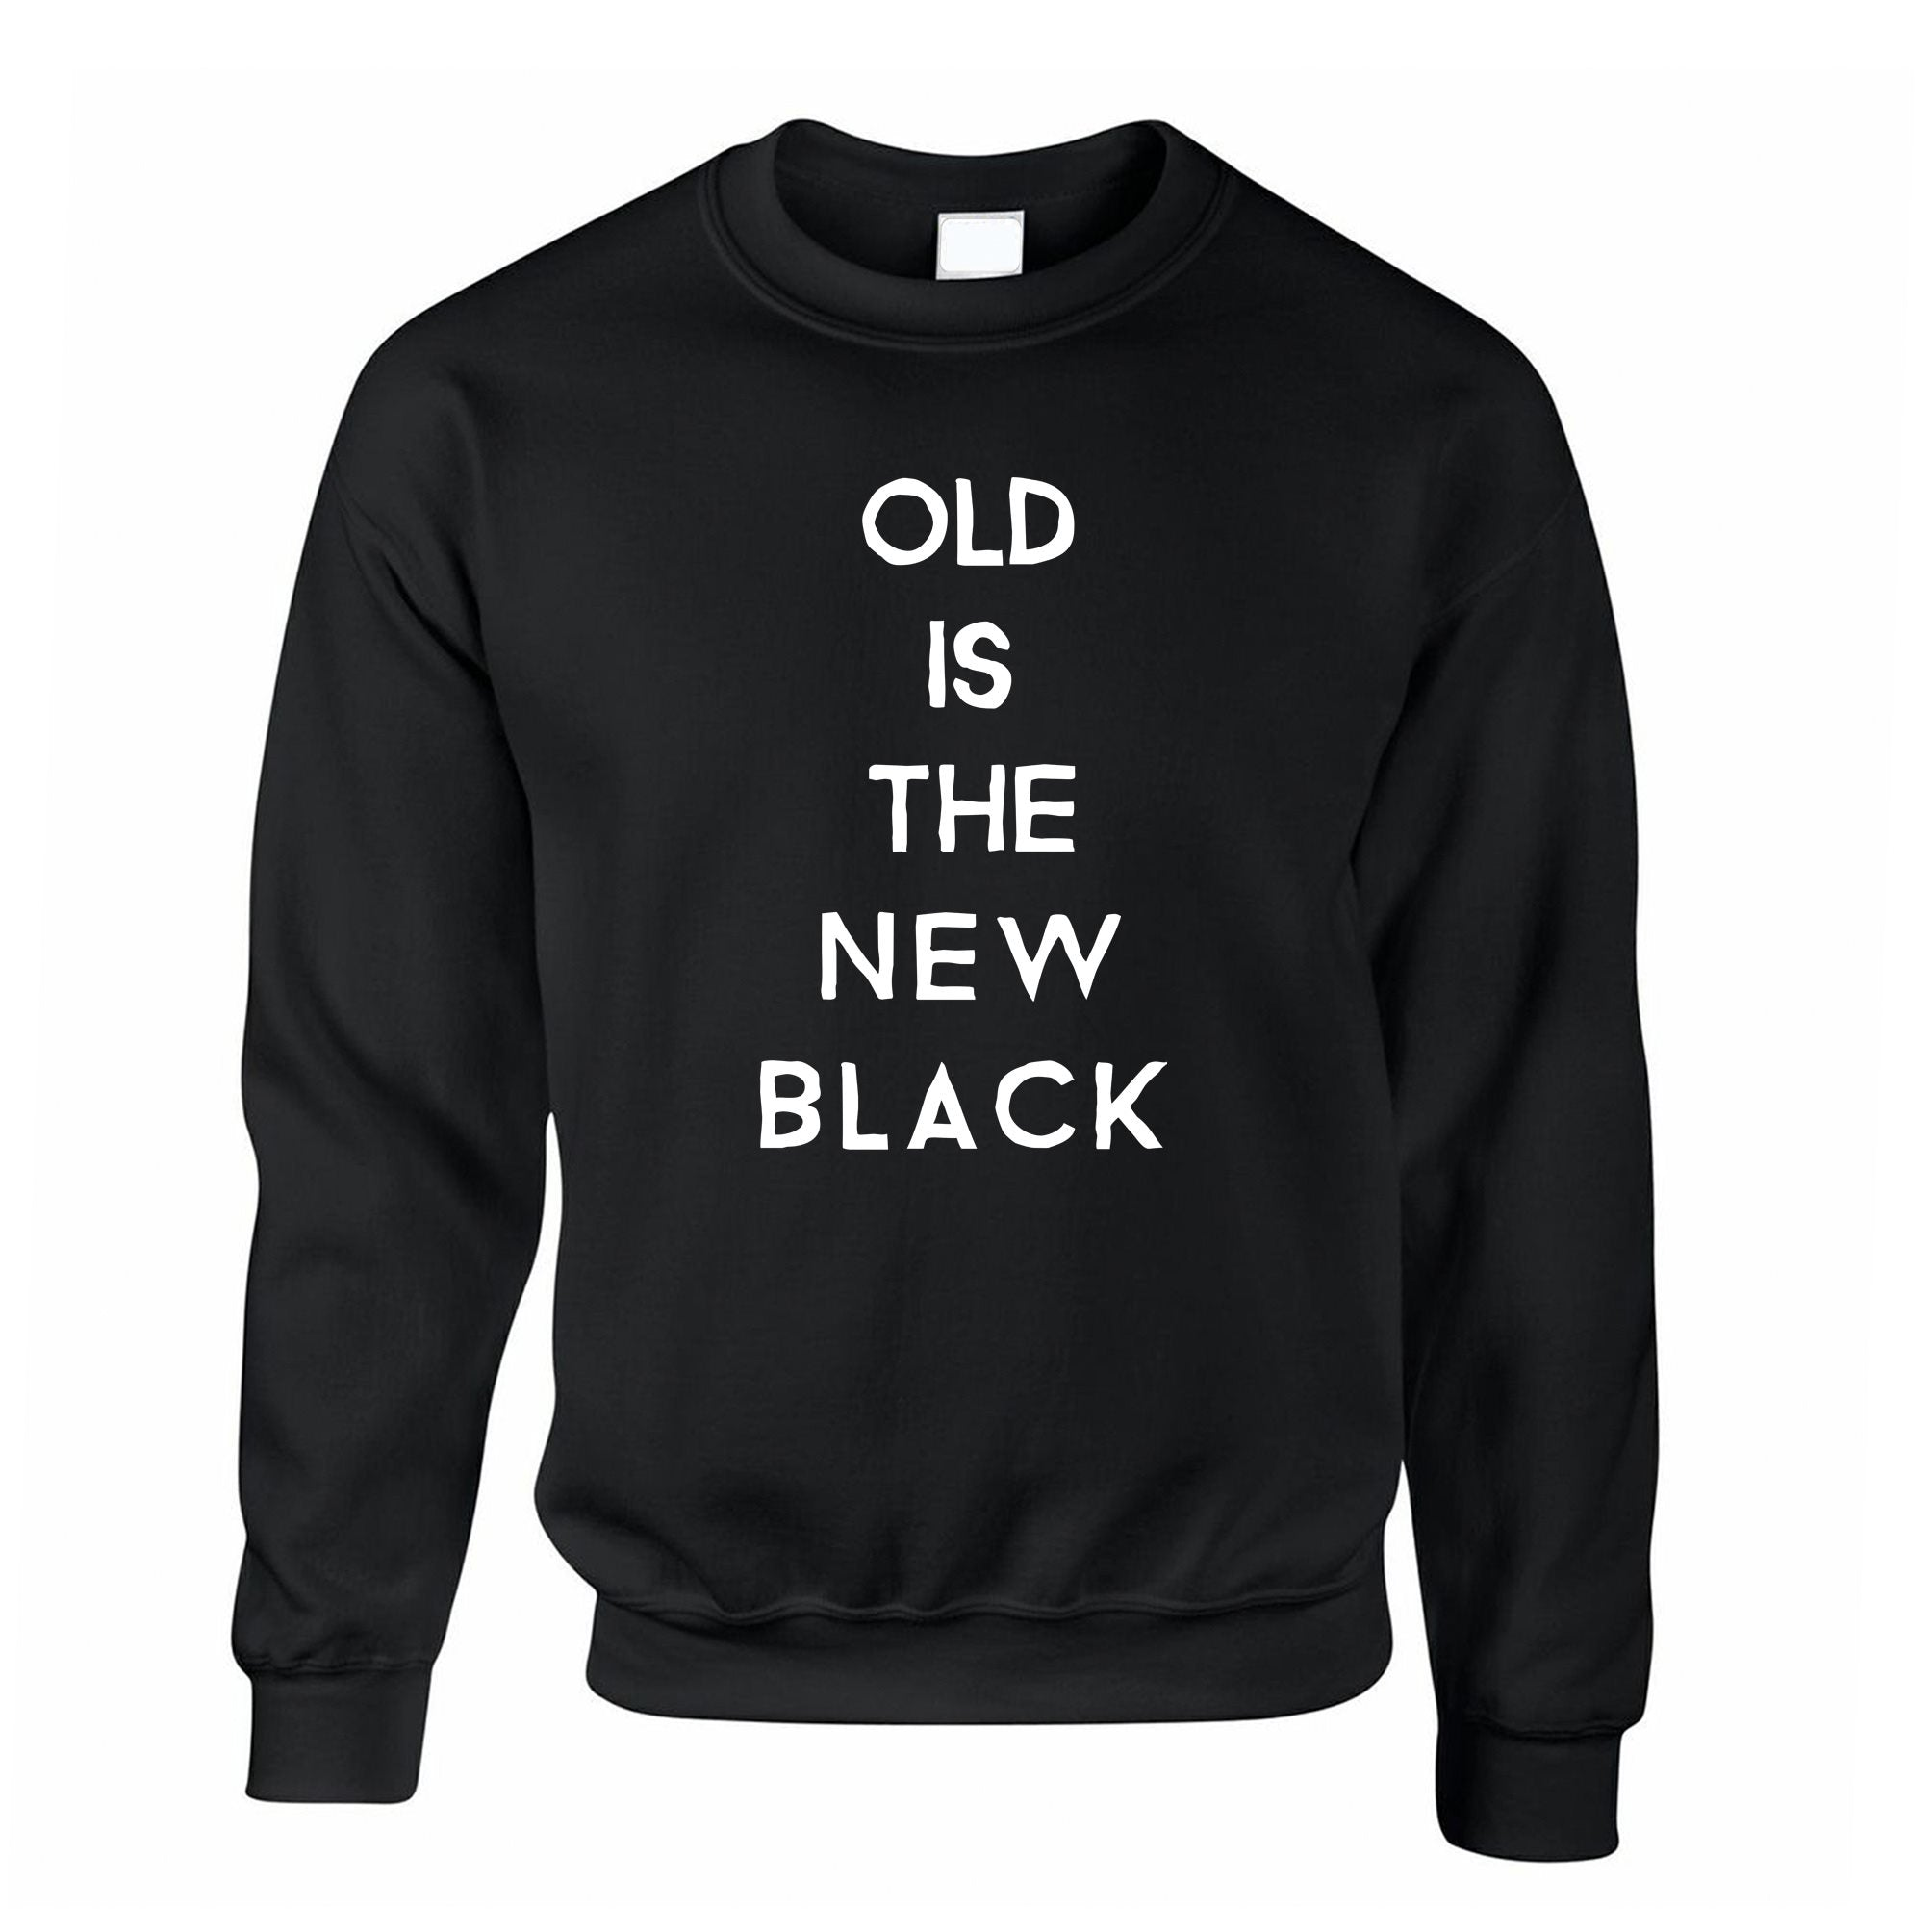 Birthday Jumper Old Is The New Black Slogan Sweatshirt Sweater